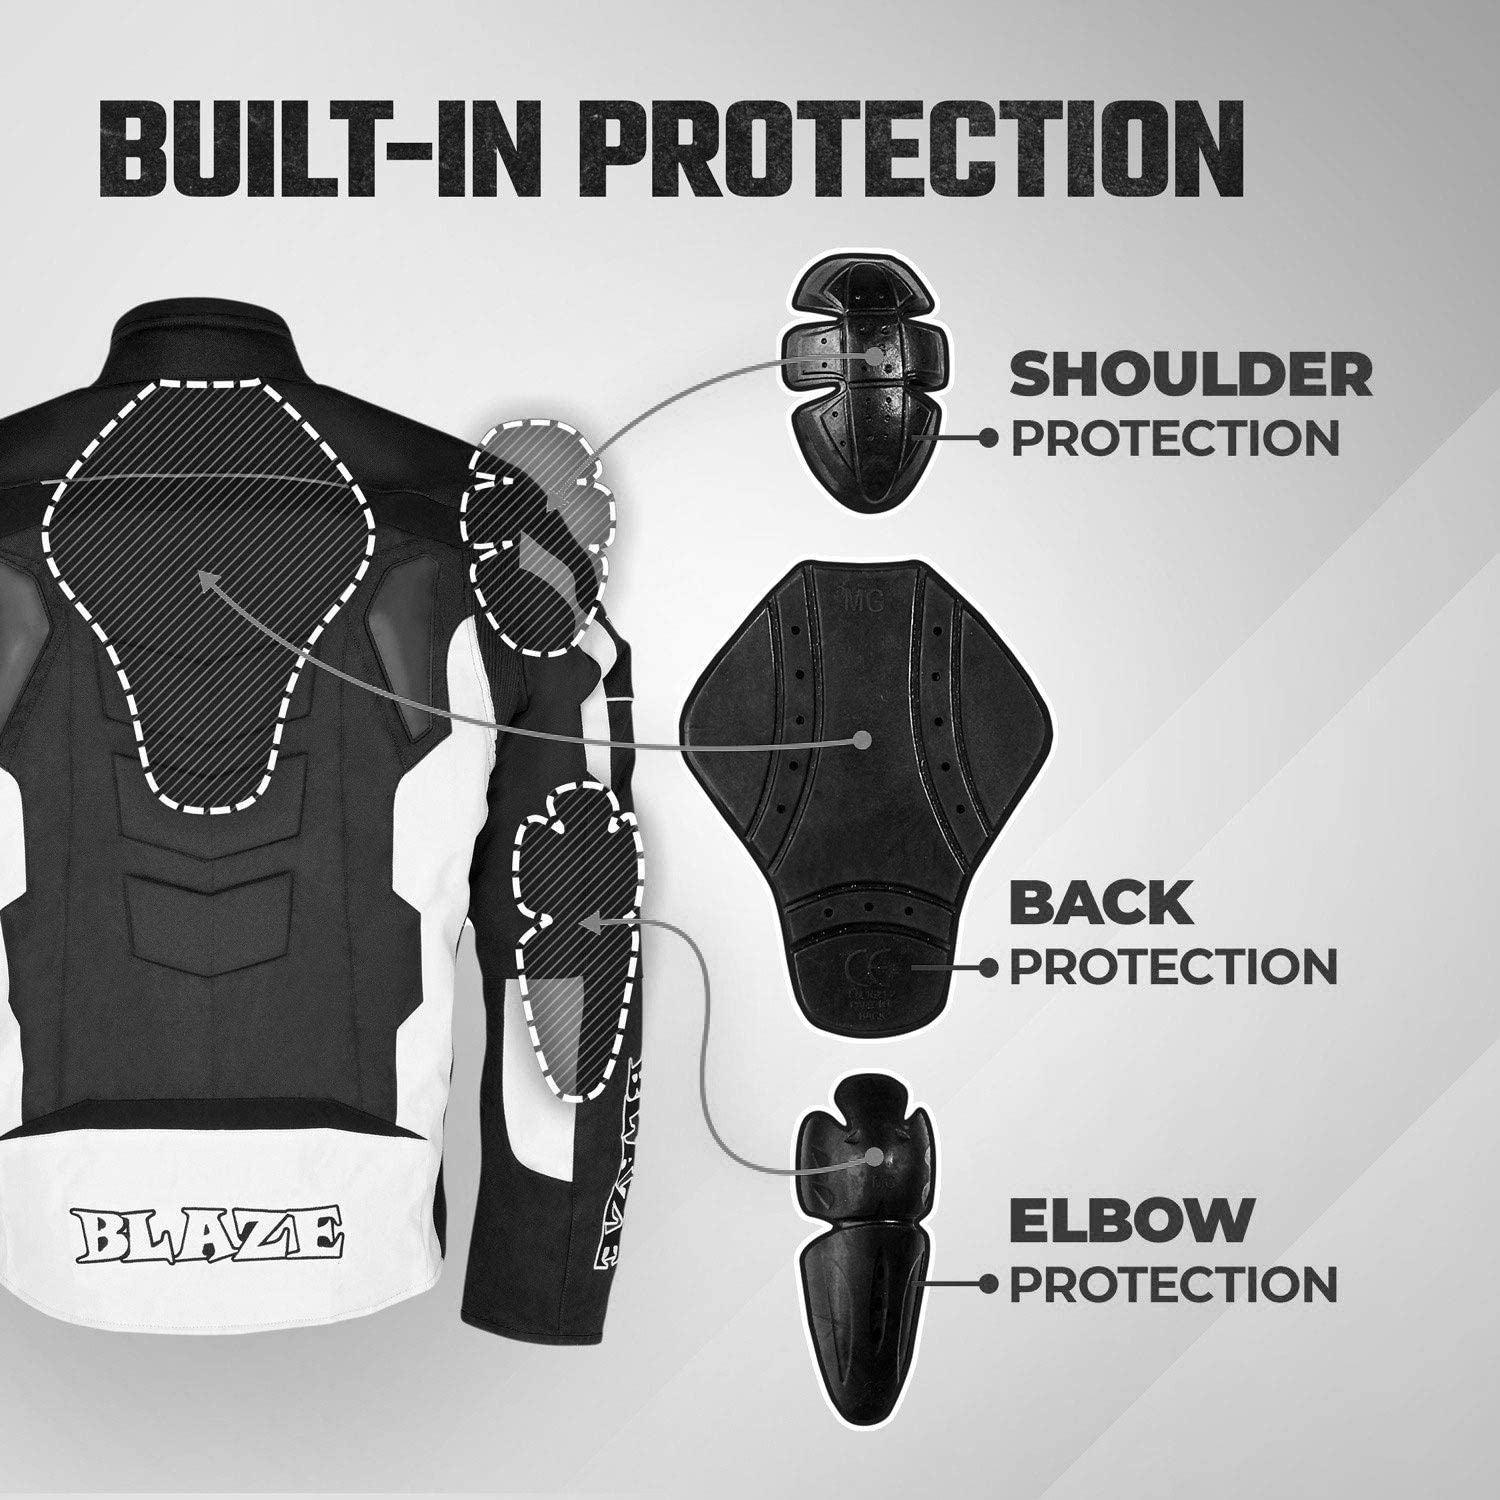 White, XL Motorcycle Riding padded Breathable Jacket Waterproof Textile Full Body Protection Gear Motorbike accessories for men women Winter Summer Armour